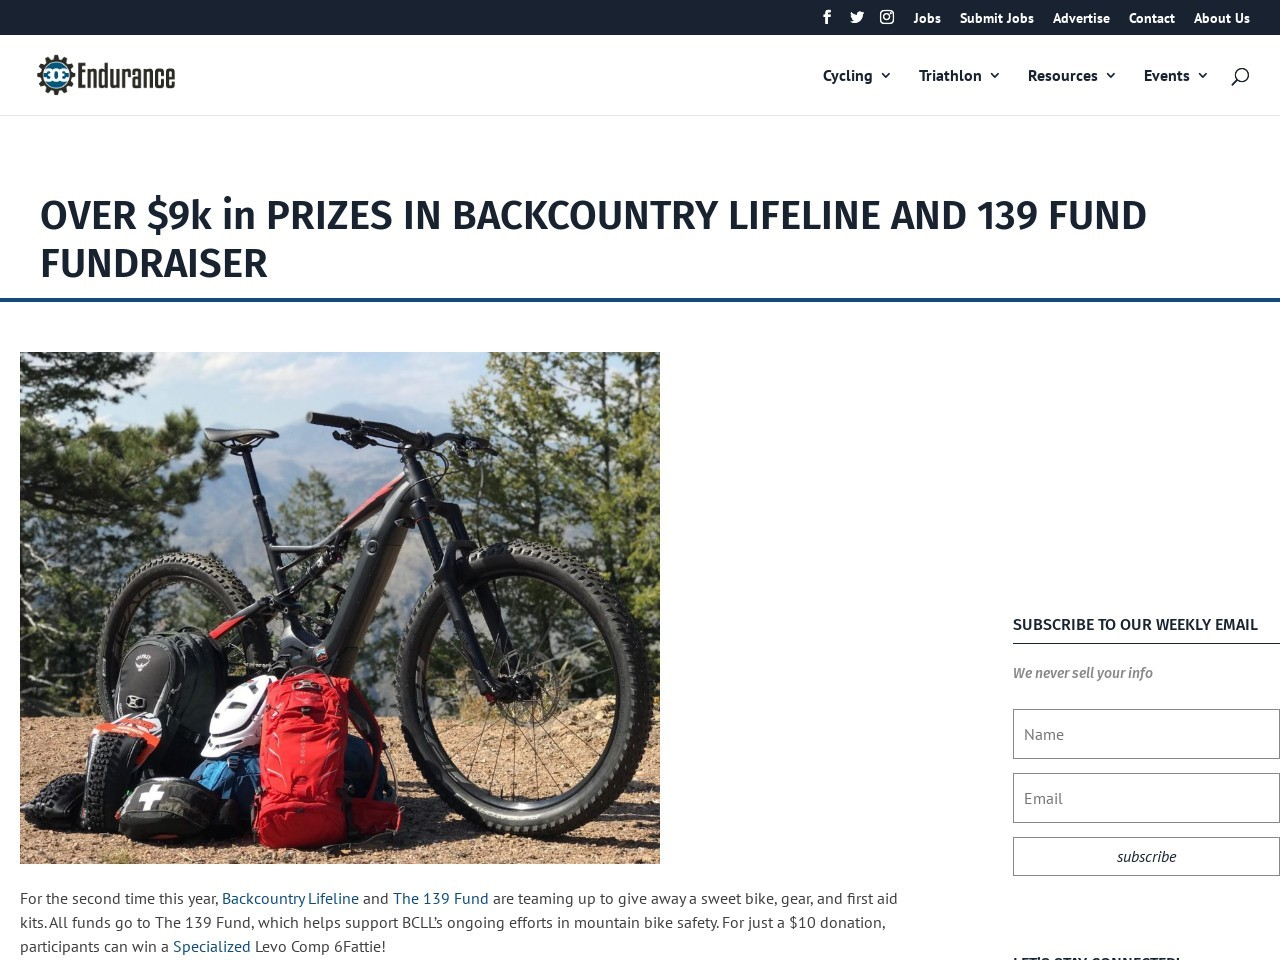 OVER $9k in PRIZES IN BACKCOUNTRY LIFELINE AND 139 FUND FUNDRAISER